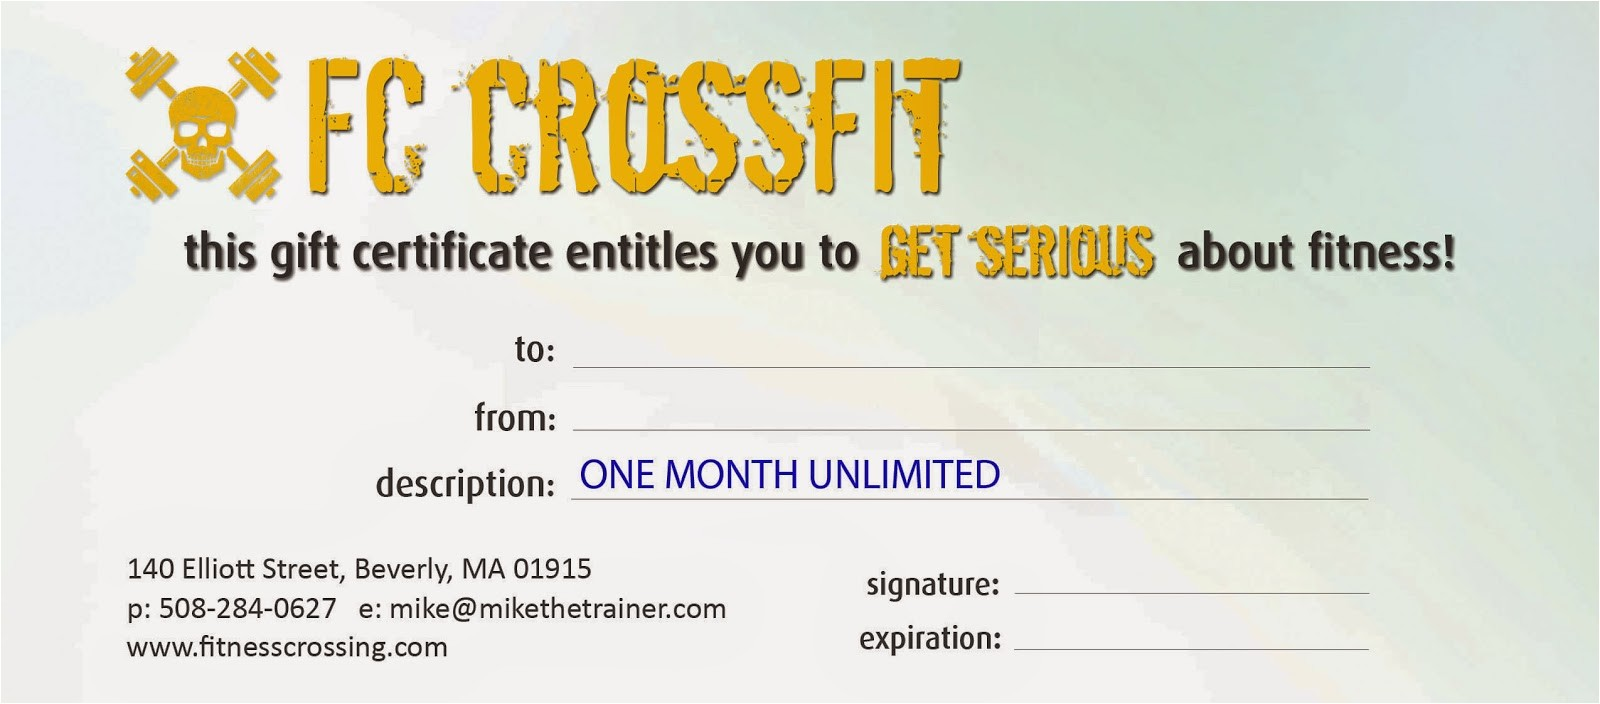 tis season to give gift of crossfit